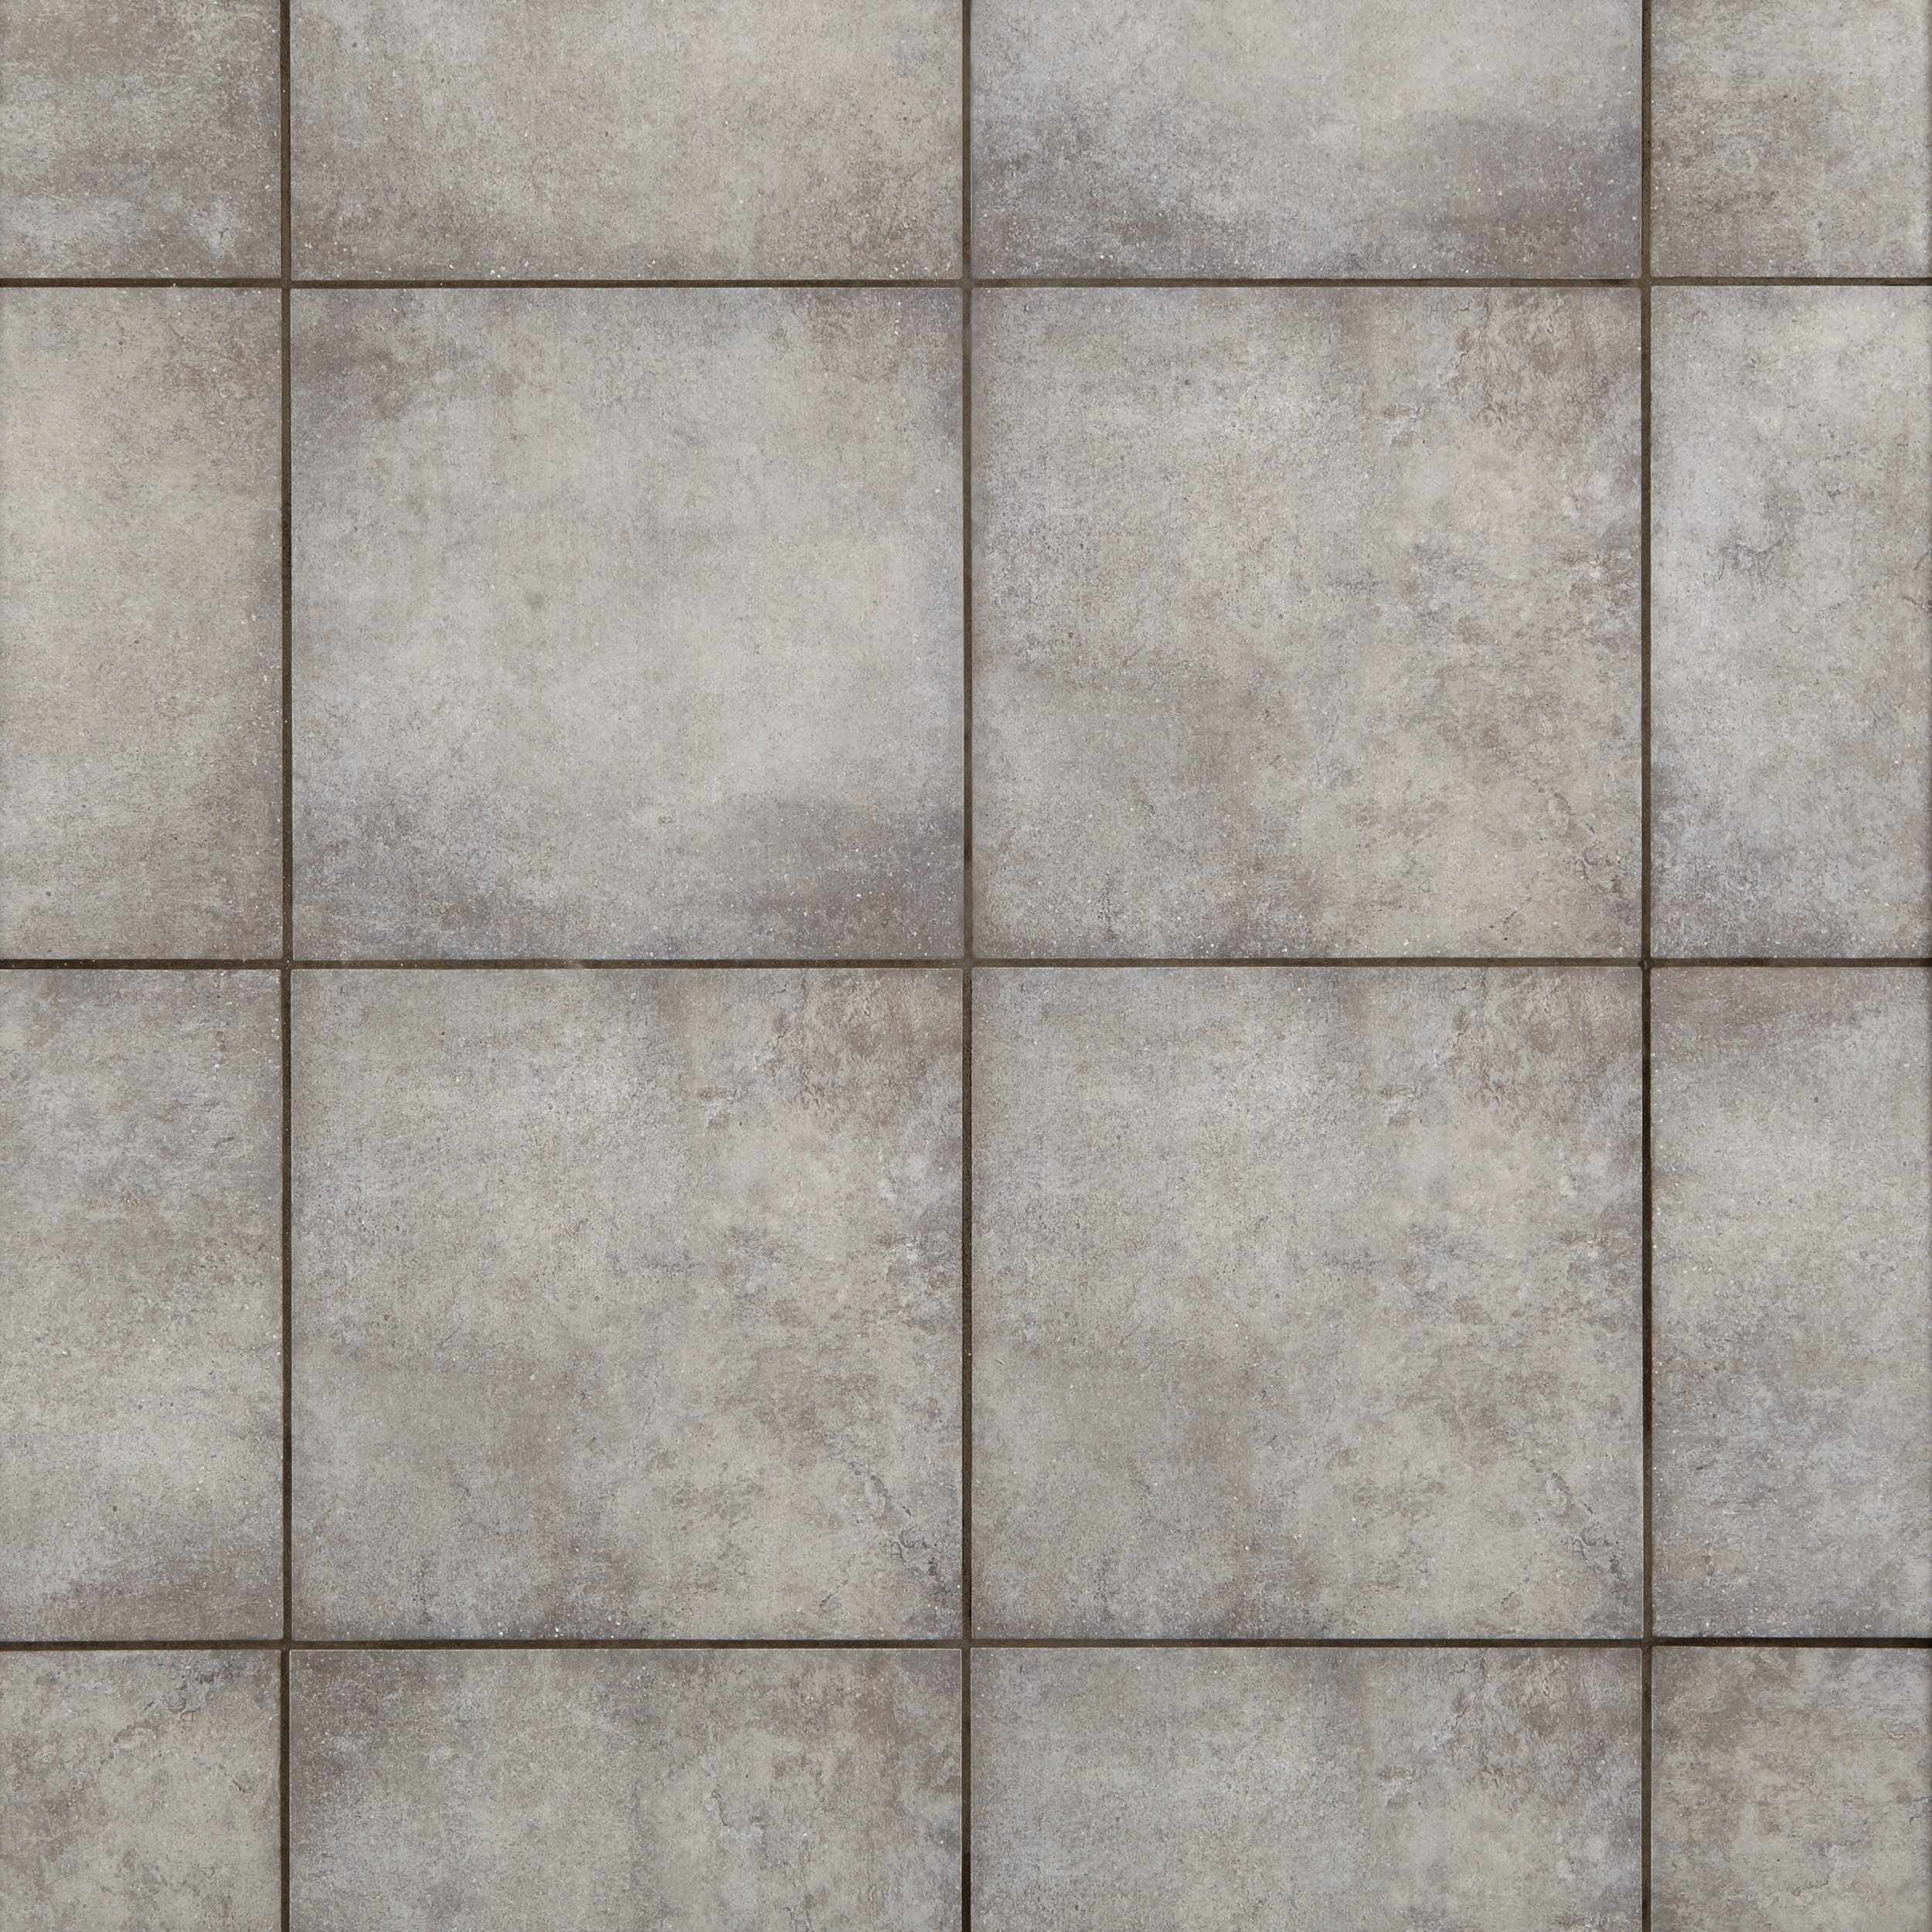 How To Put Ceramic Tile In Bathroom Floor: Floor & Decor